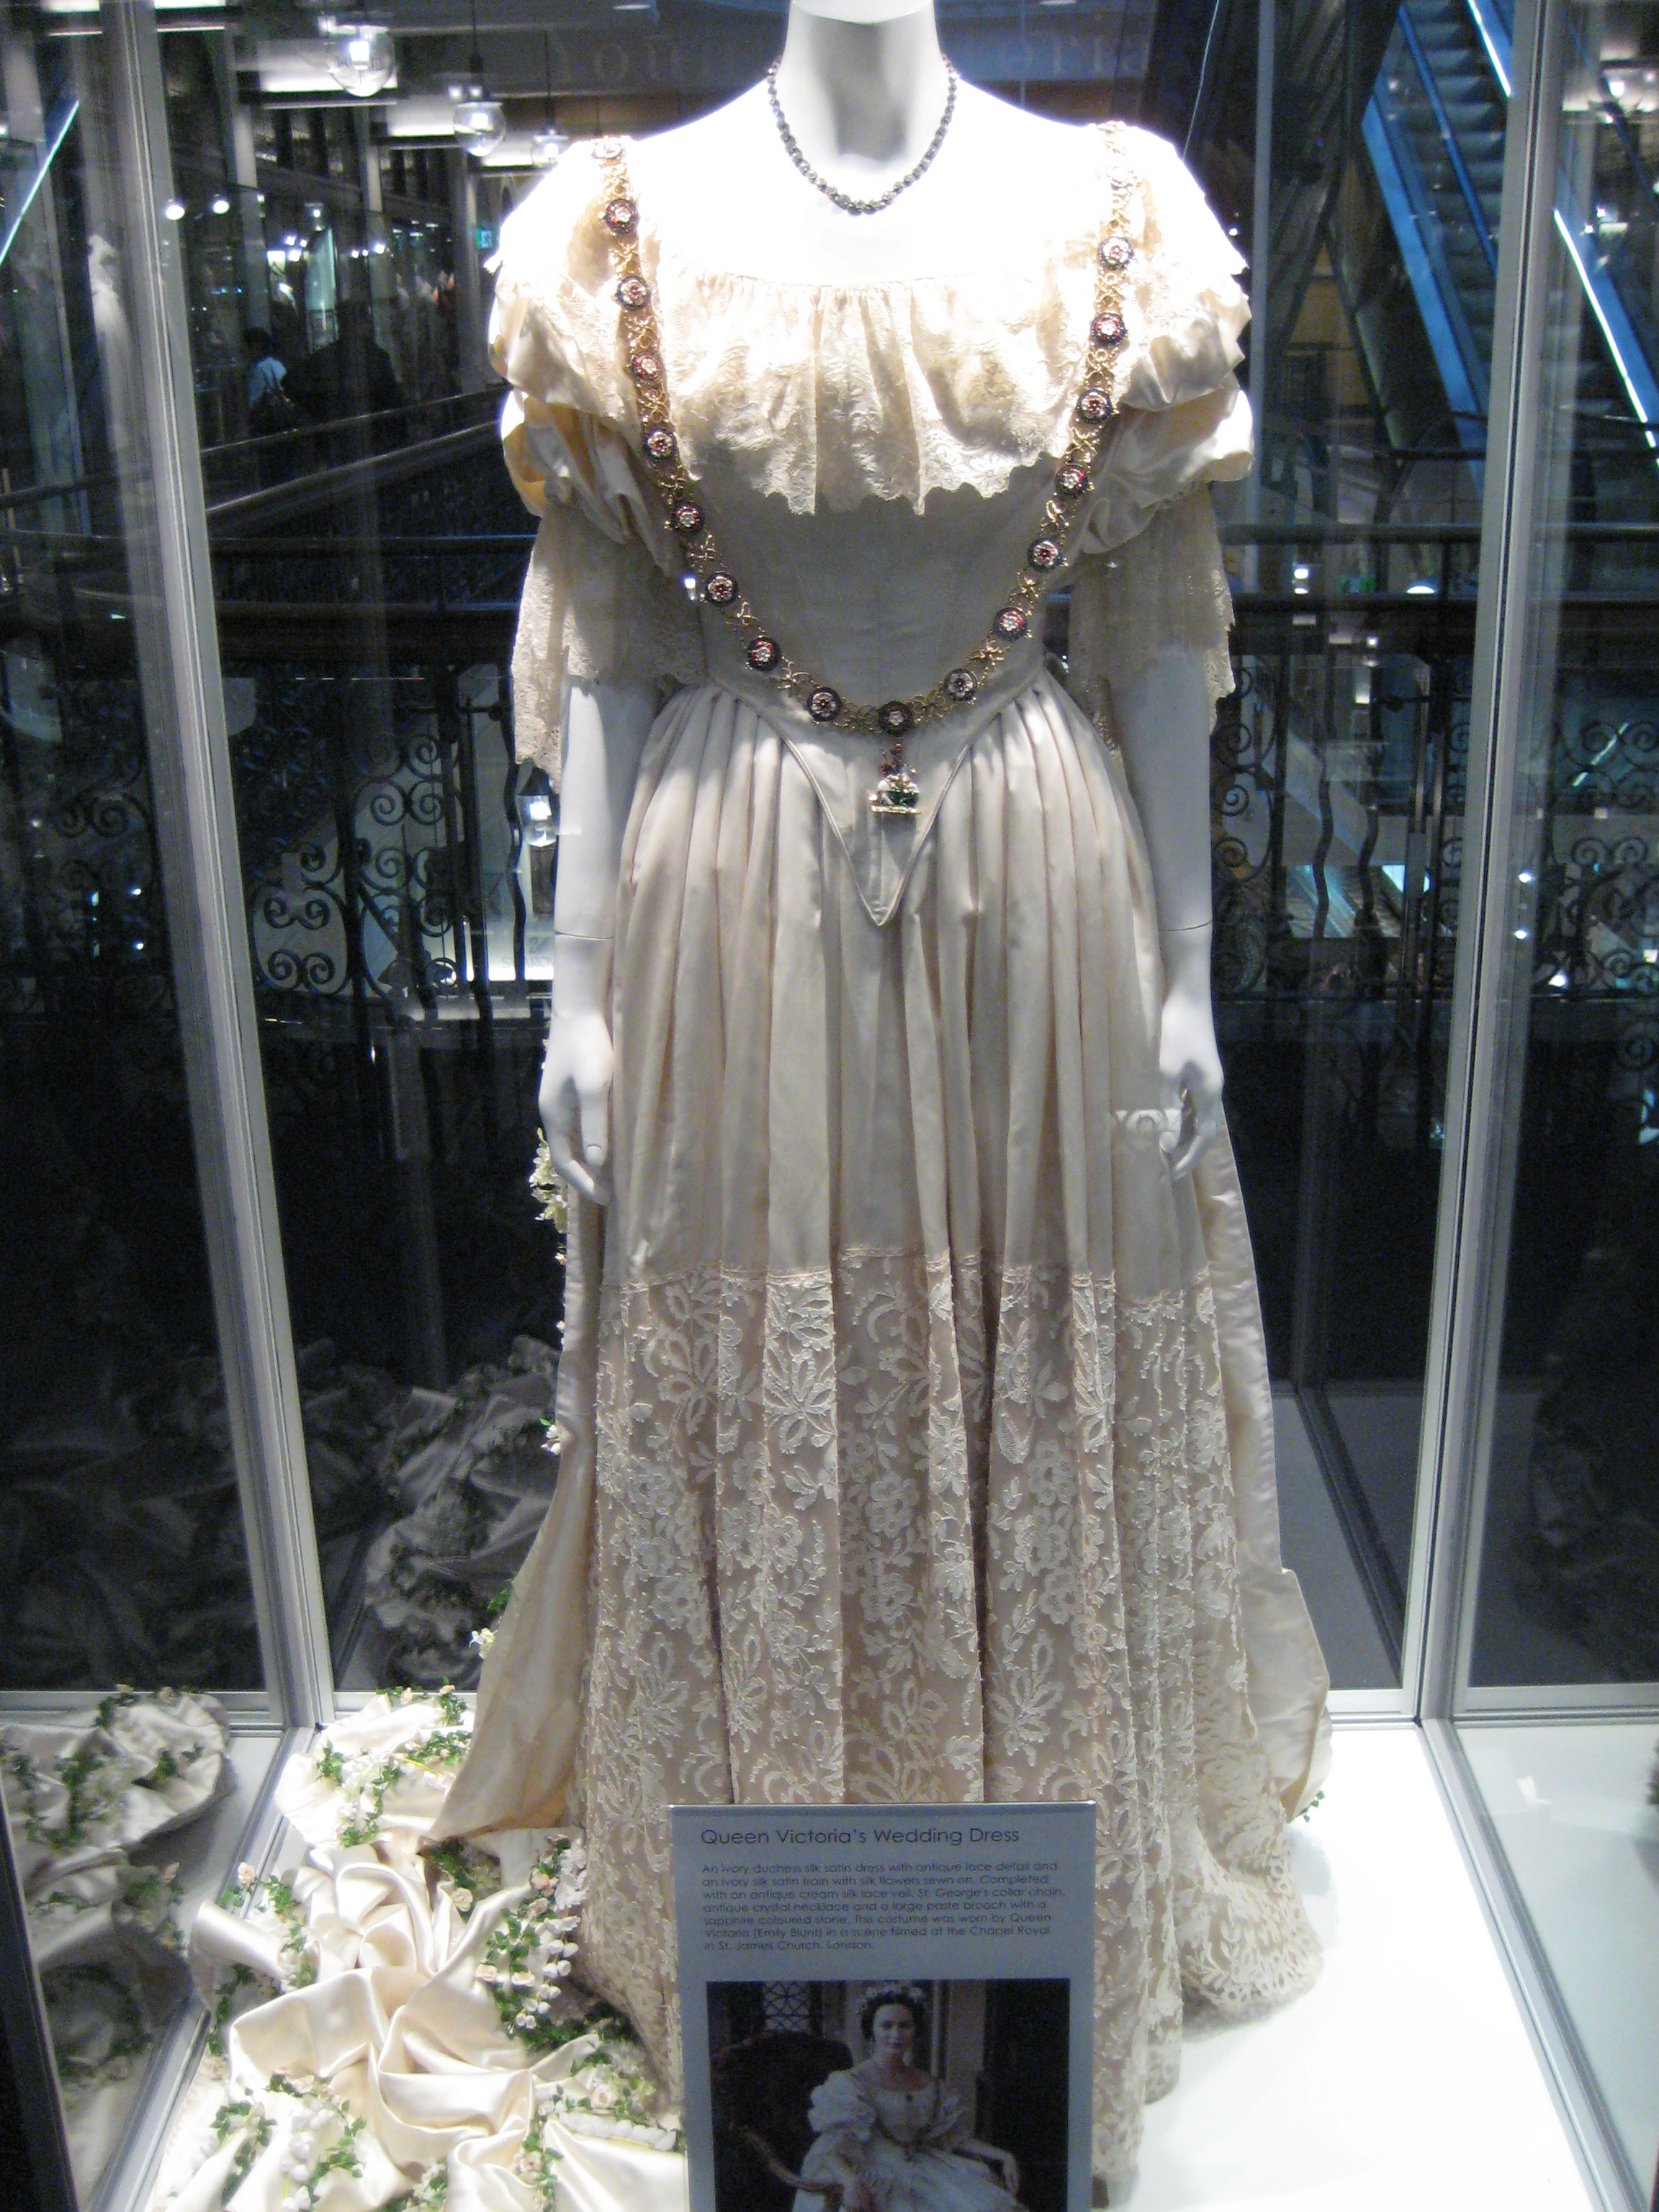 queen victorias wedding dre victorian wedding dress Queen Victoria s wedding dress used in filming Young Queen Victoria on display at Victoria Mall in